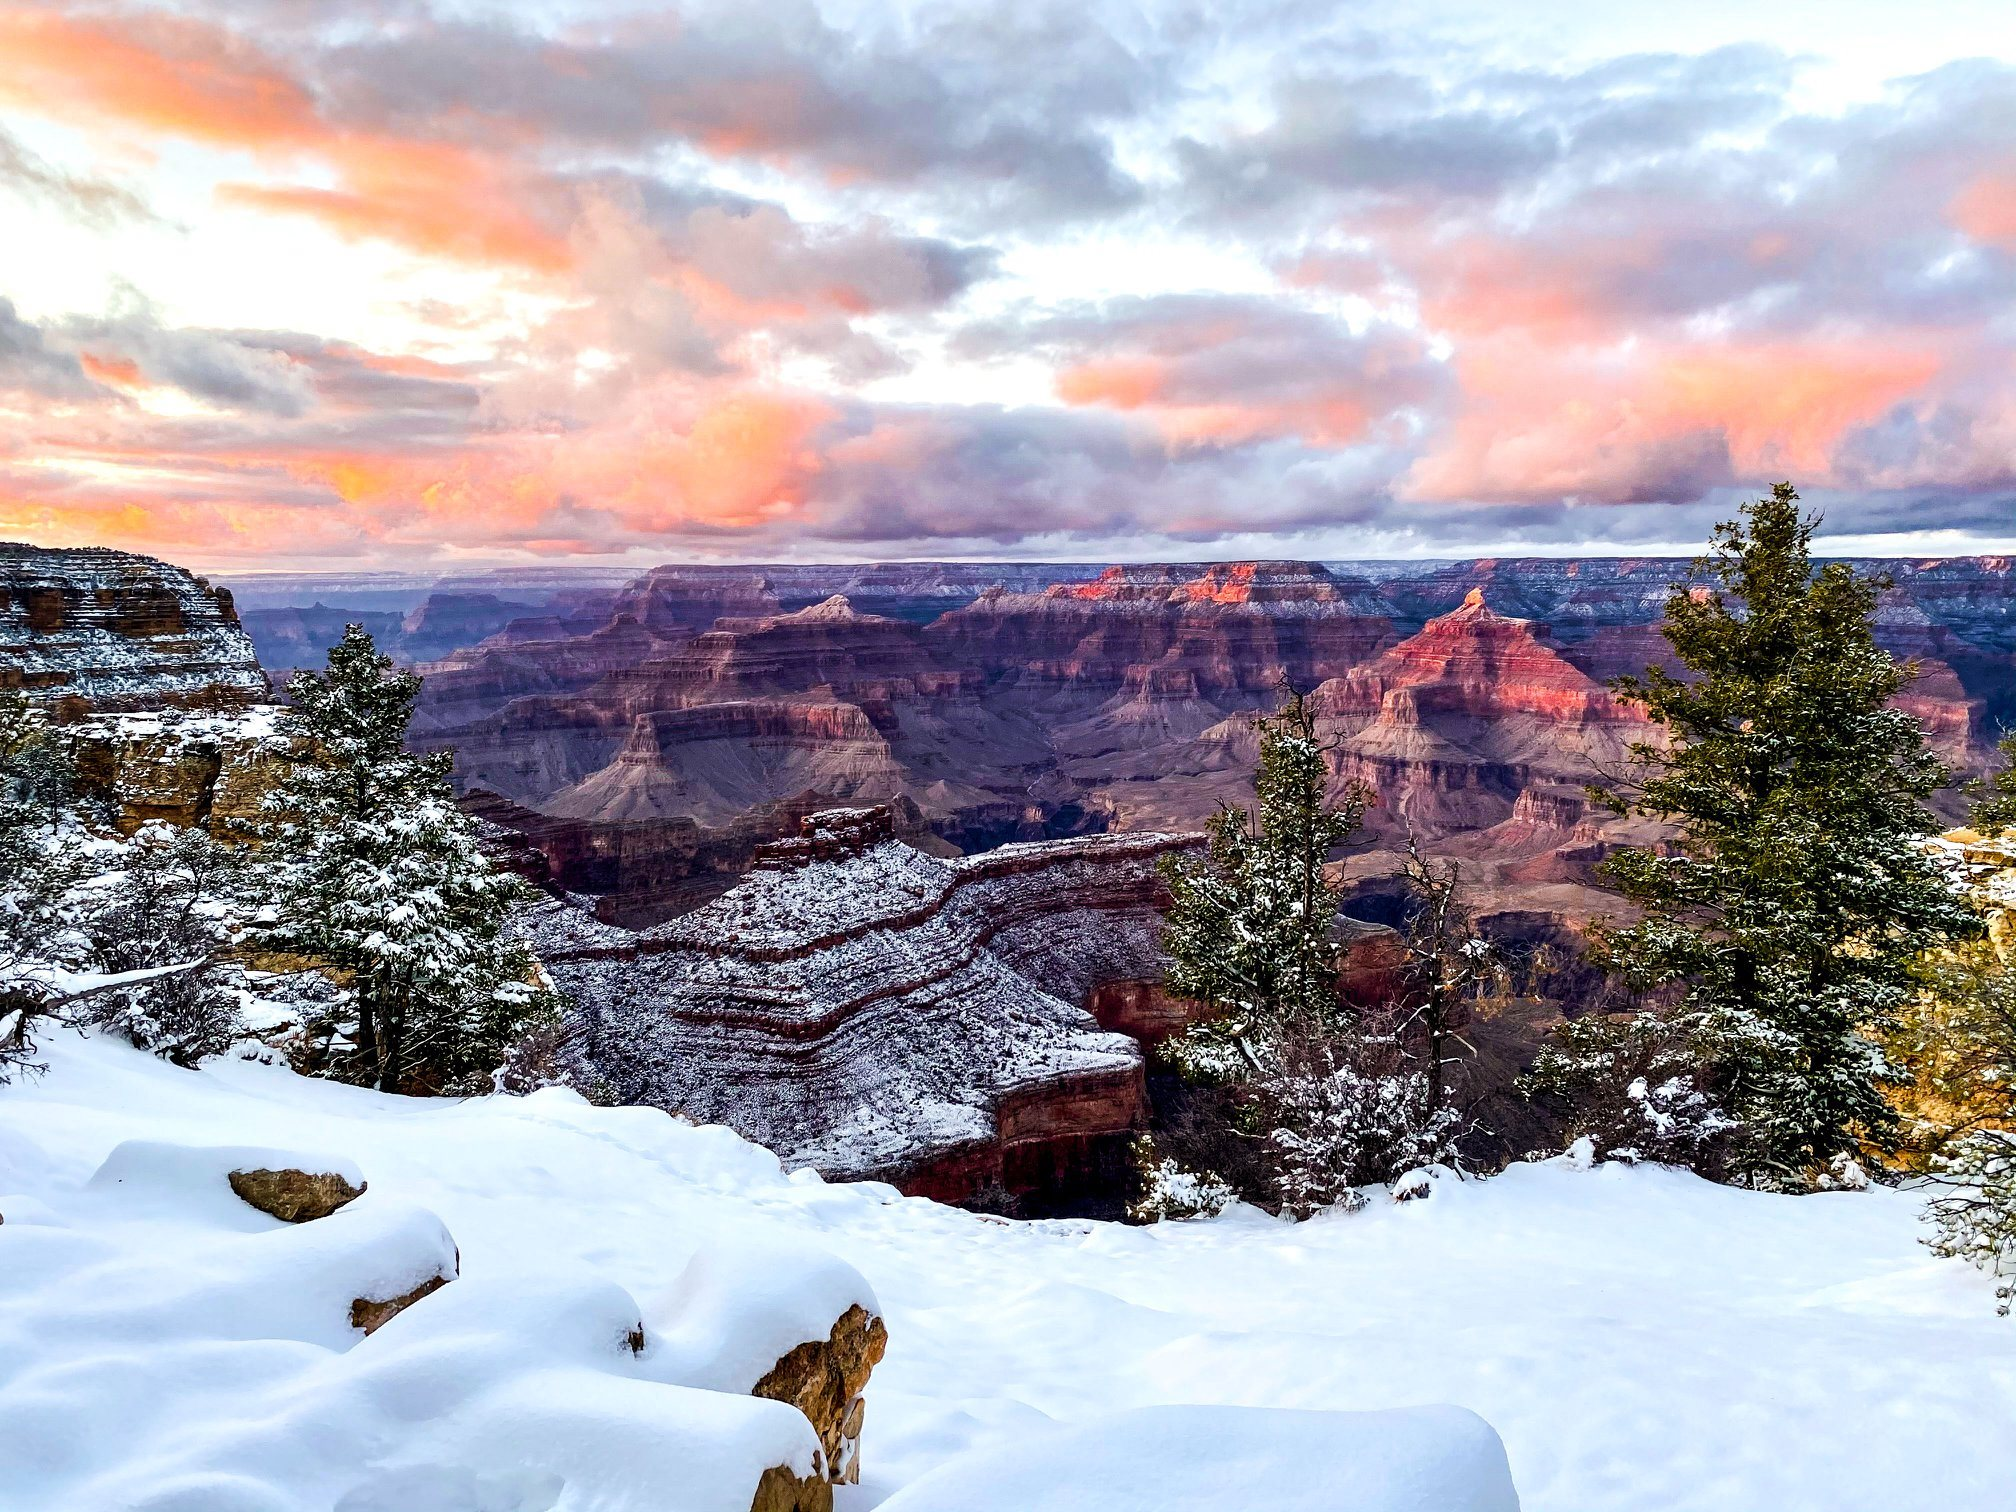 A pink sunset over the snow-covered rim of the Grand Canyon